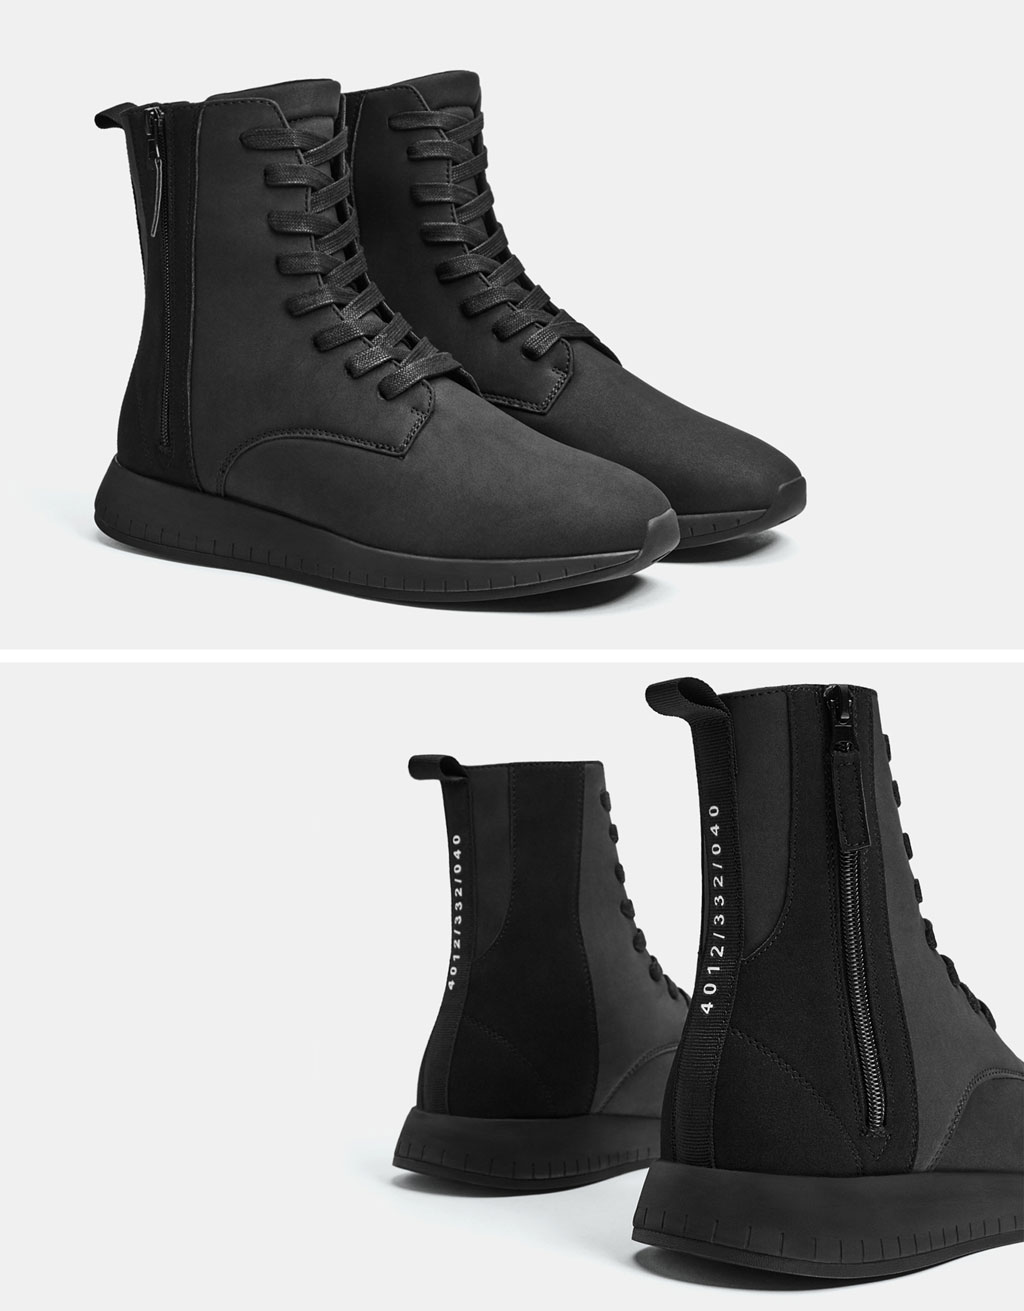 Men's monochrome high-top sneakers